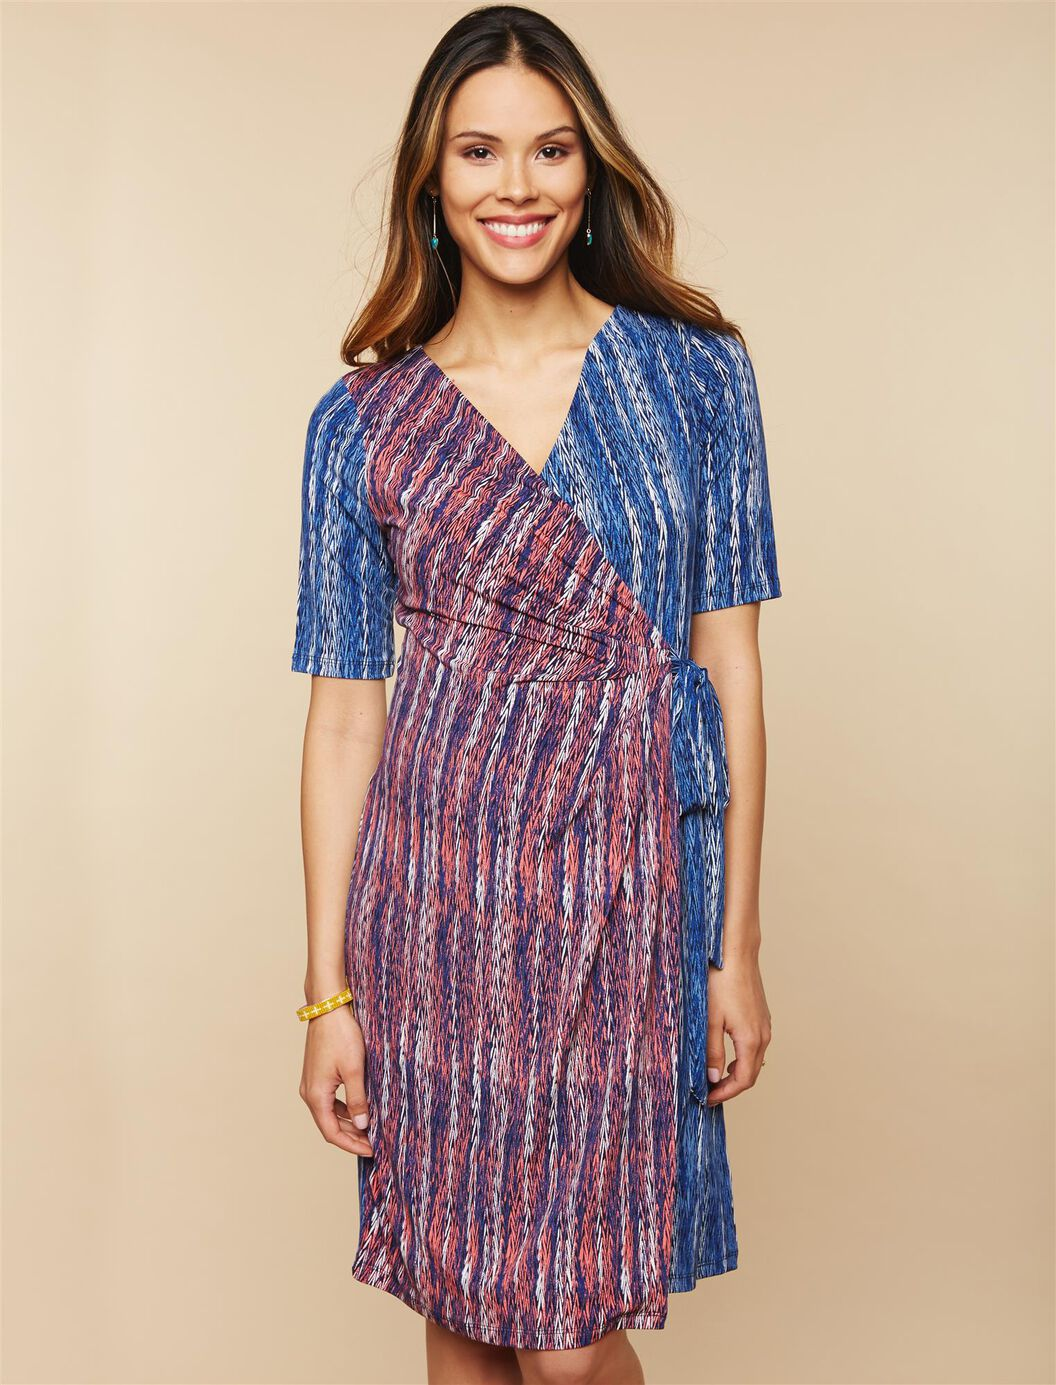 Waist Tie Surplice Maternity Dress- Red Print at Motherhood Maternity in Victor, NY | Tuggl